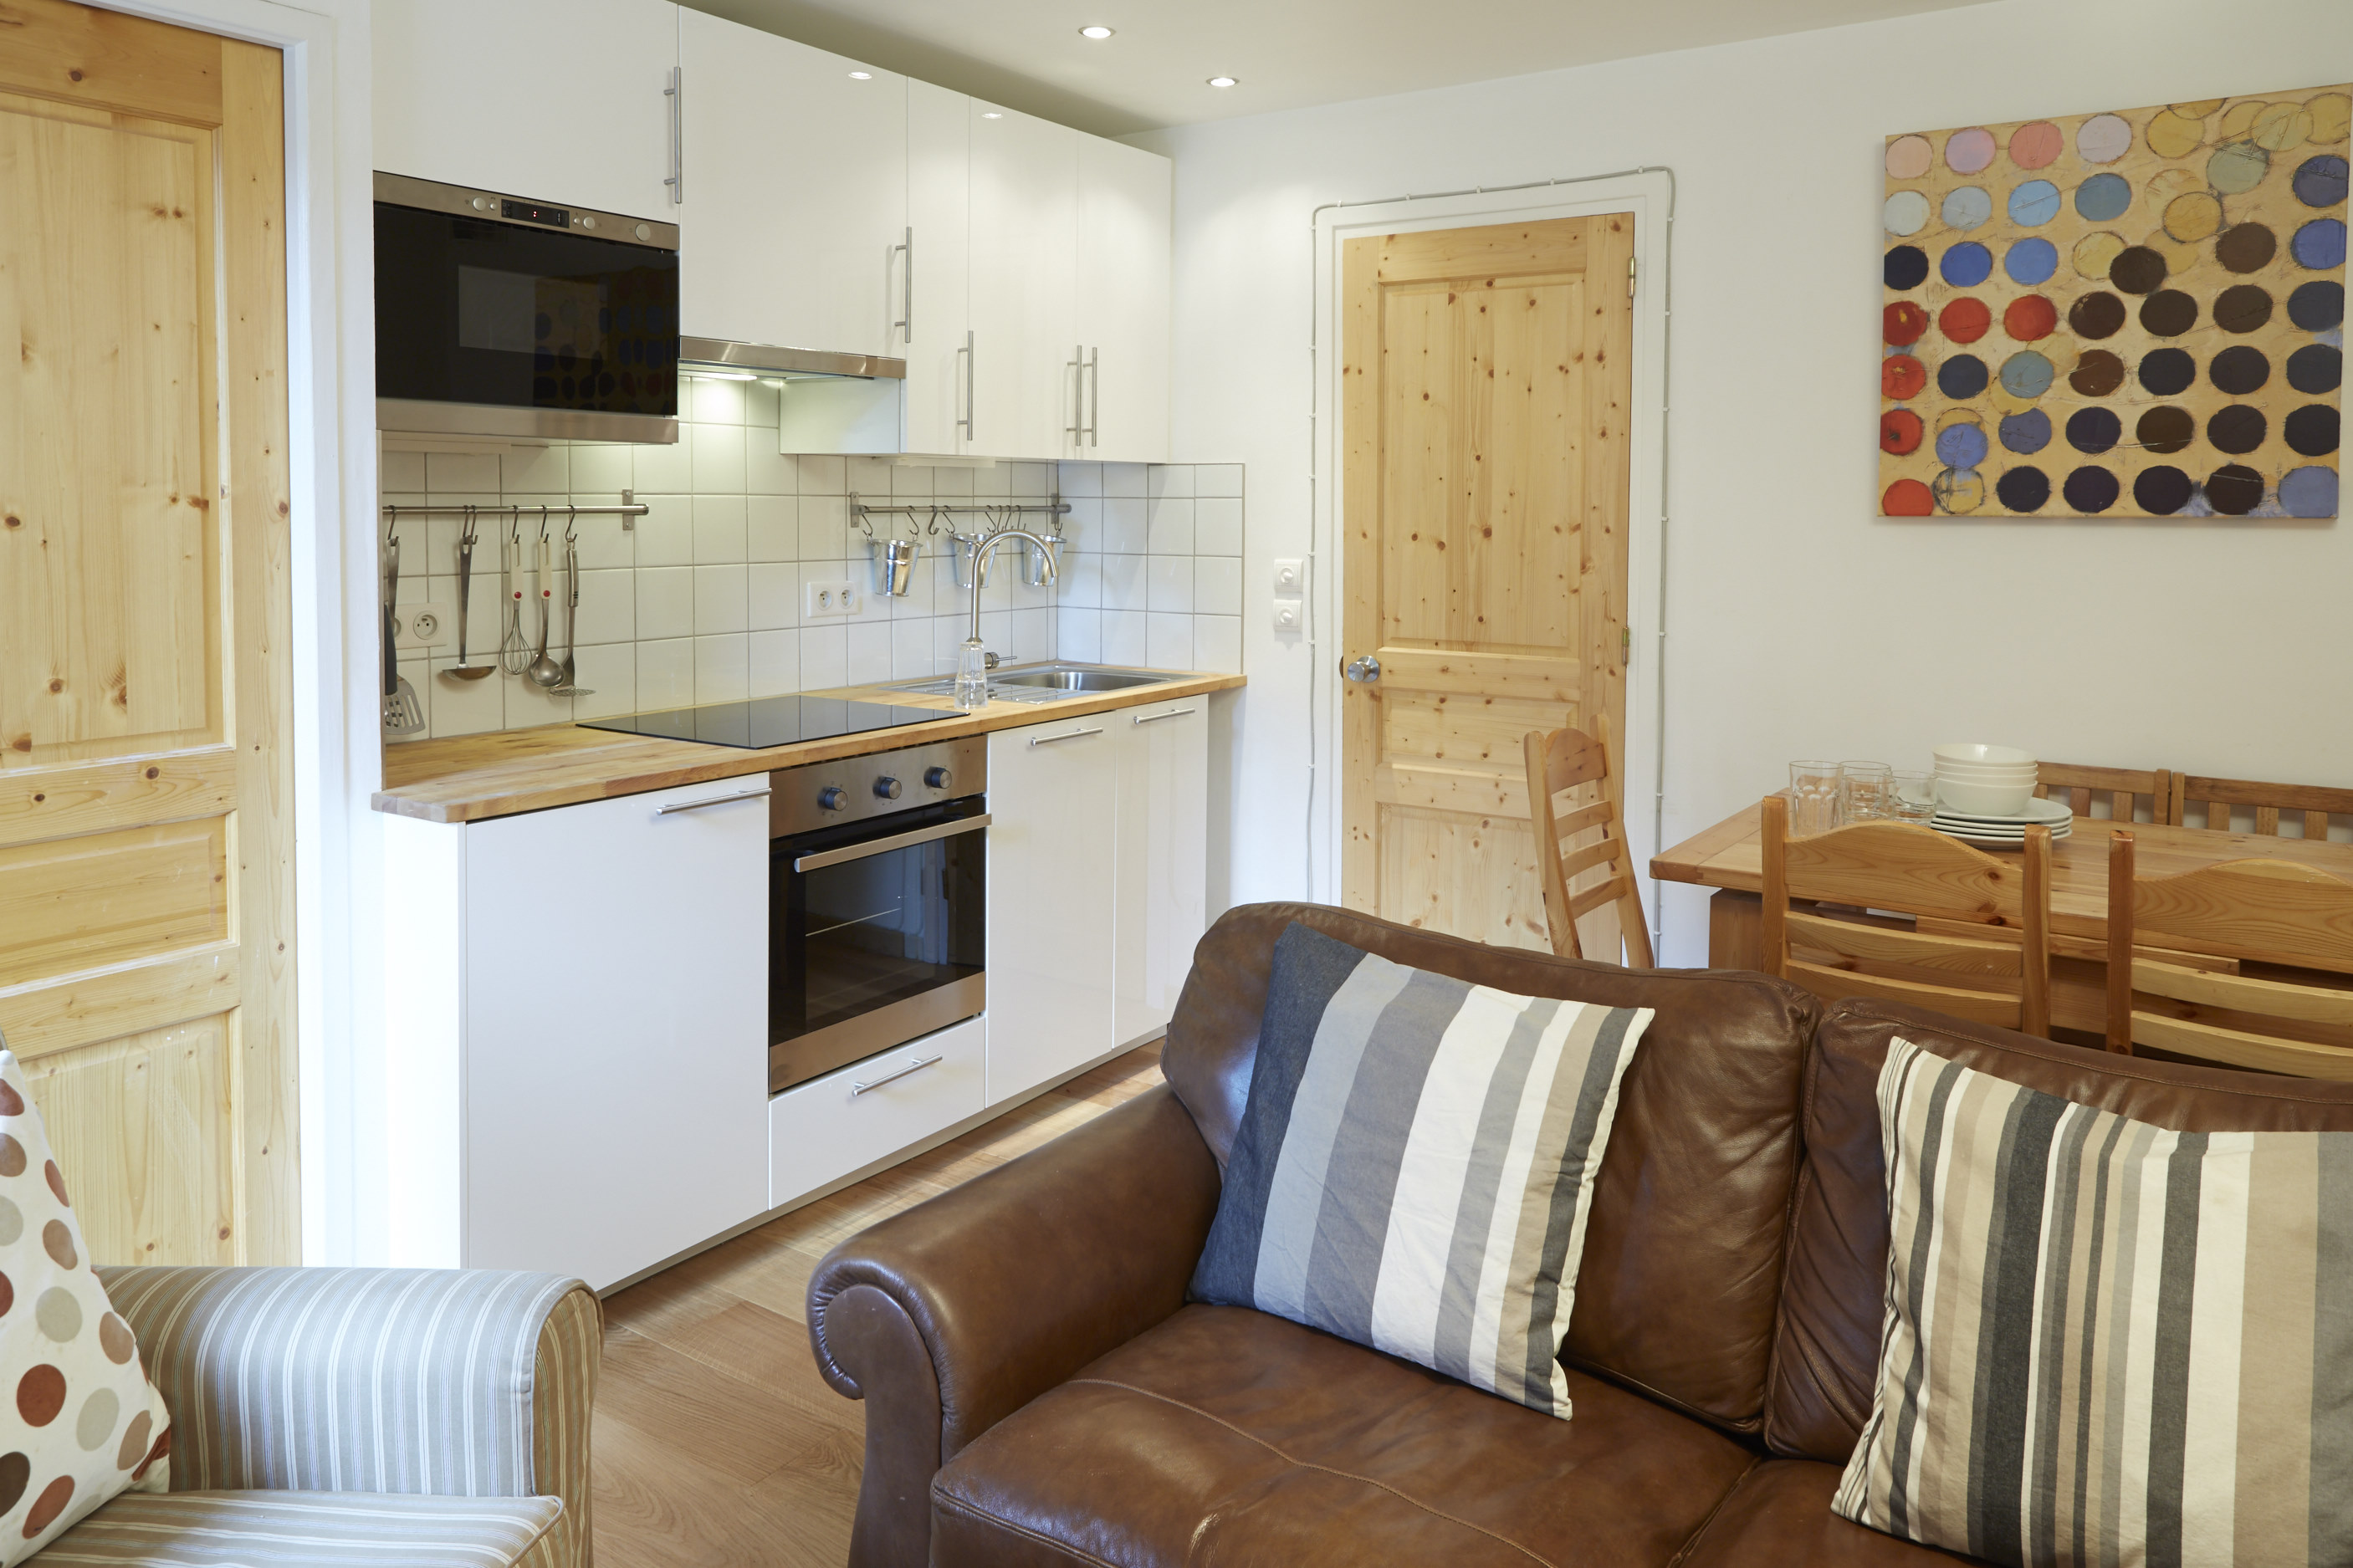 Bartavelle 7 - available as a seasonal let